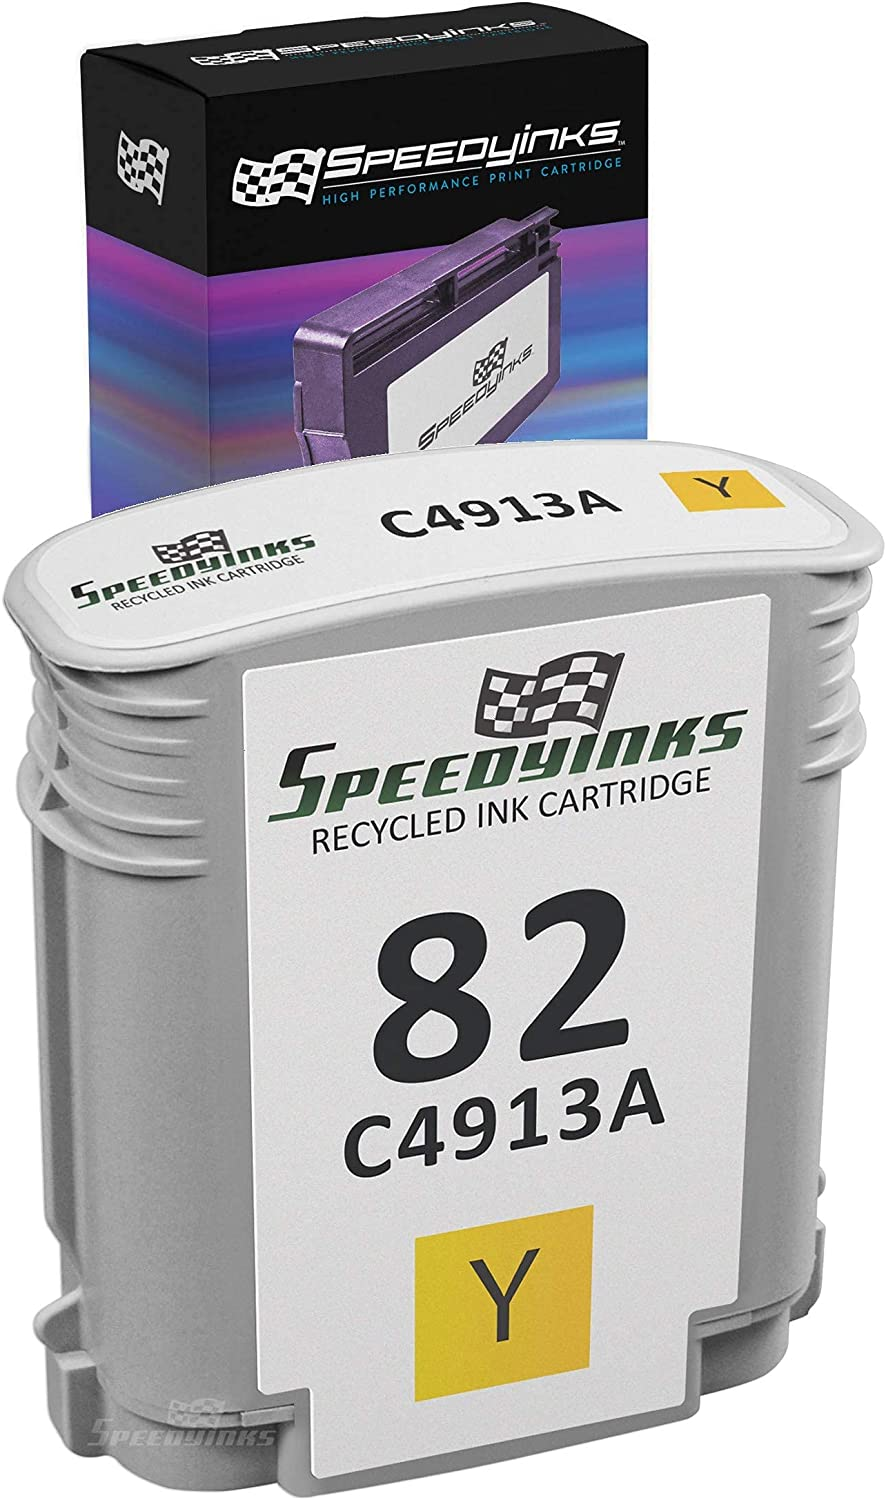 Speedy Inks Remanufactured Ink Cartridge Replacement for HP 82 C4913A (Yellow)